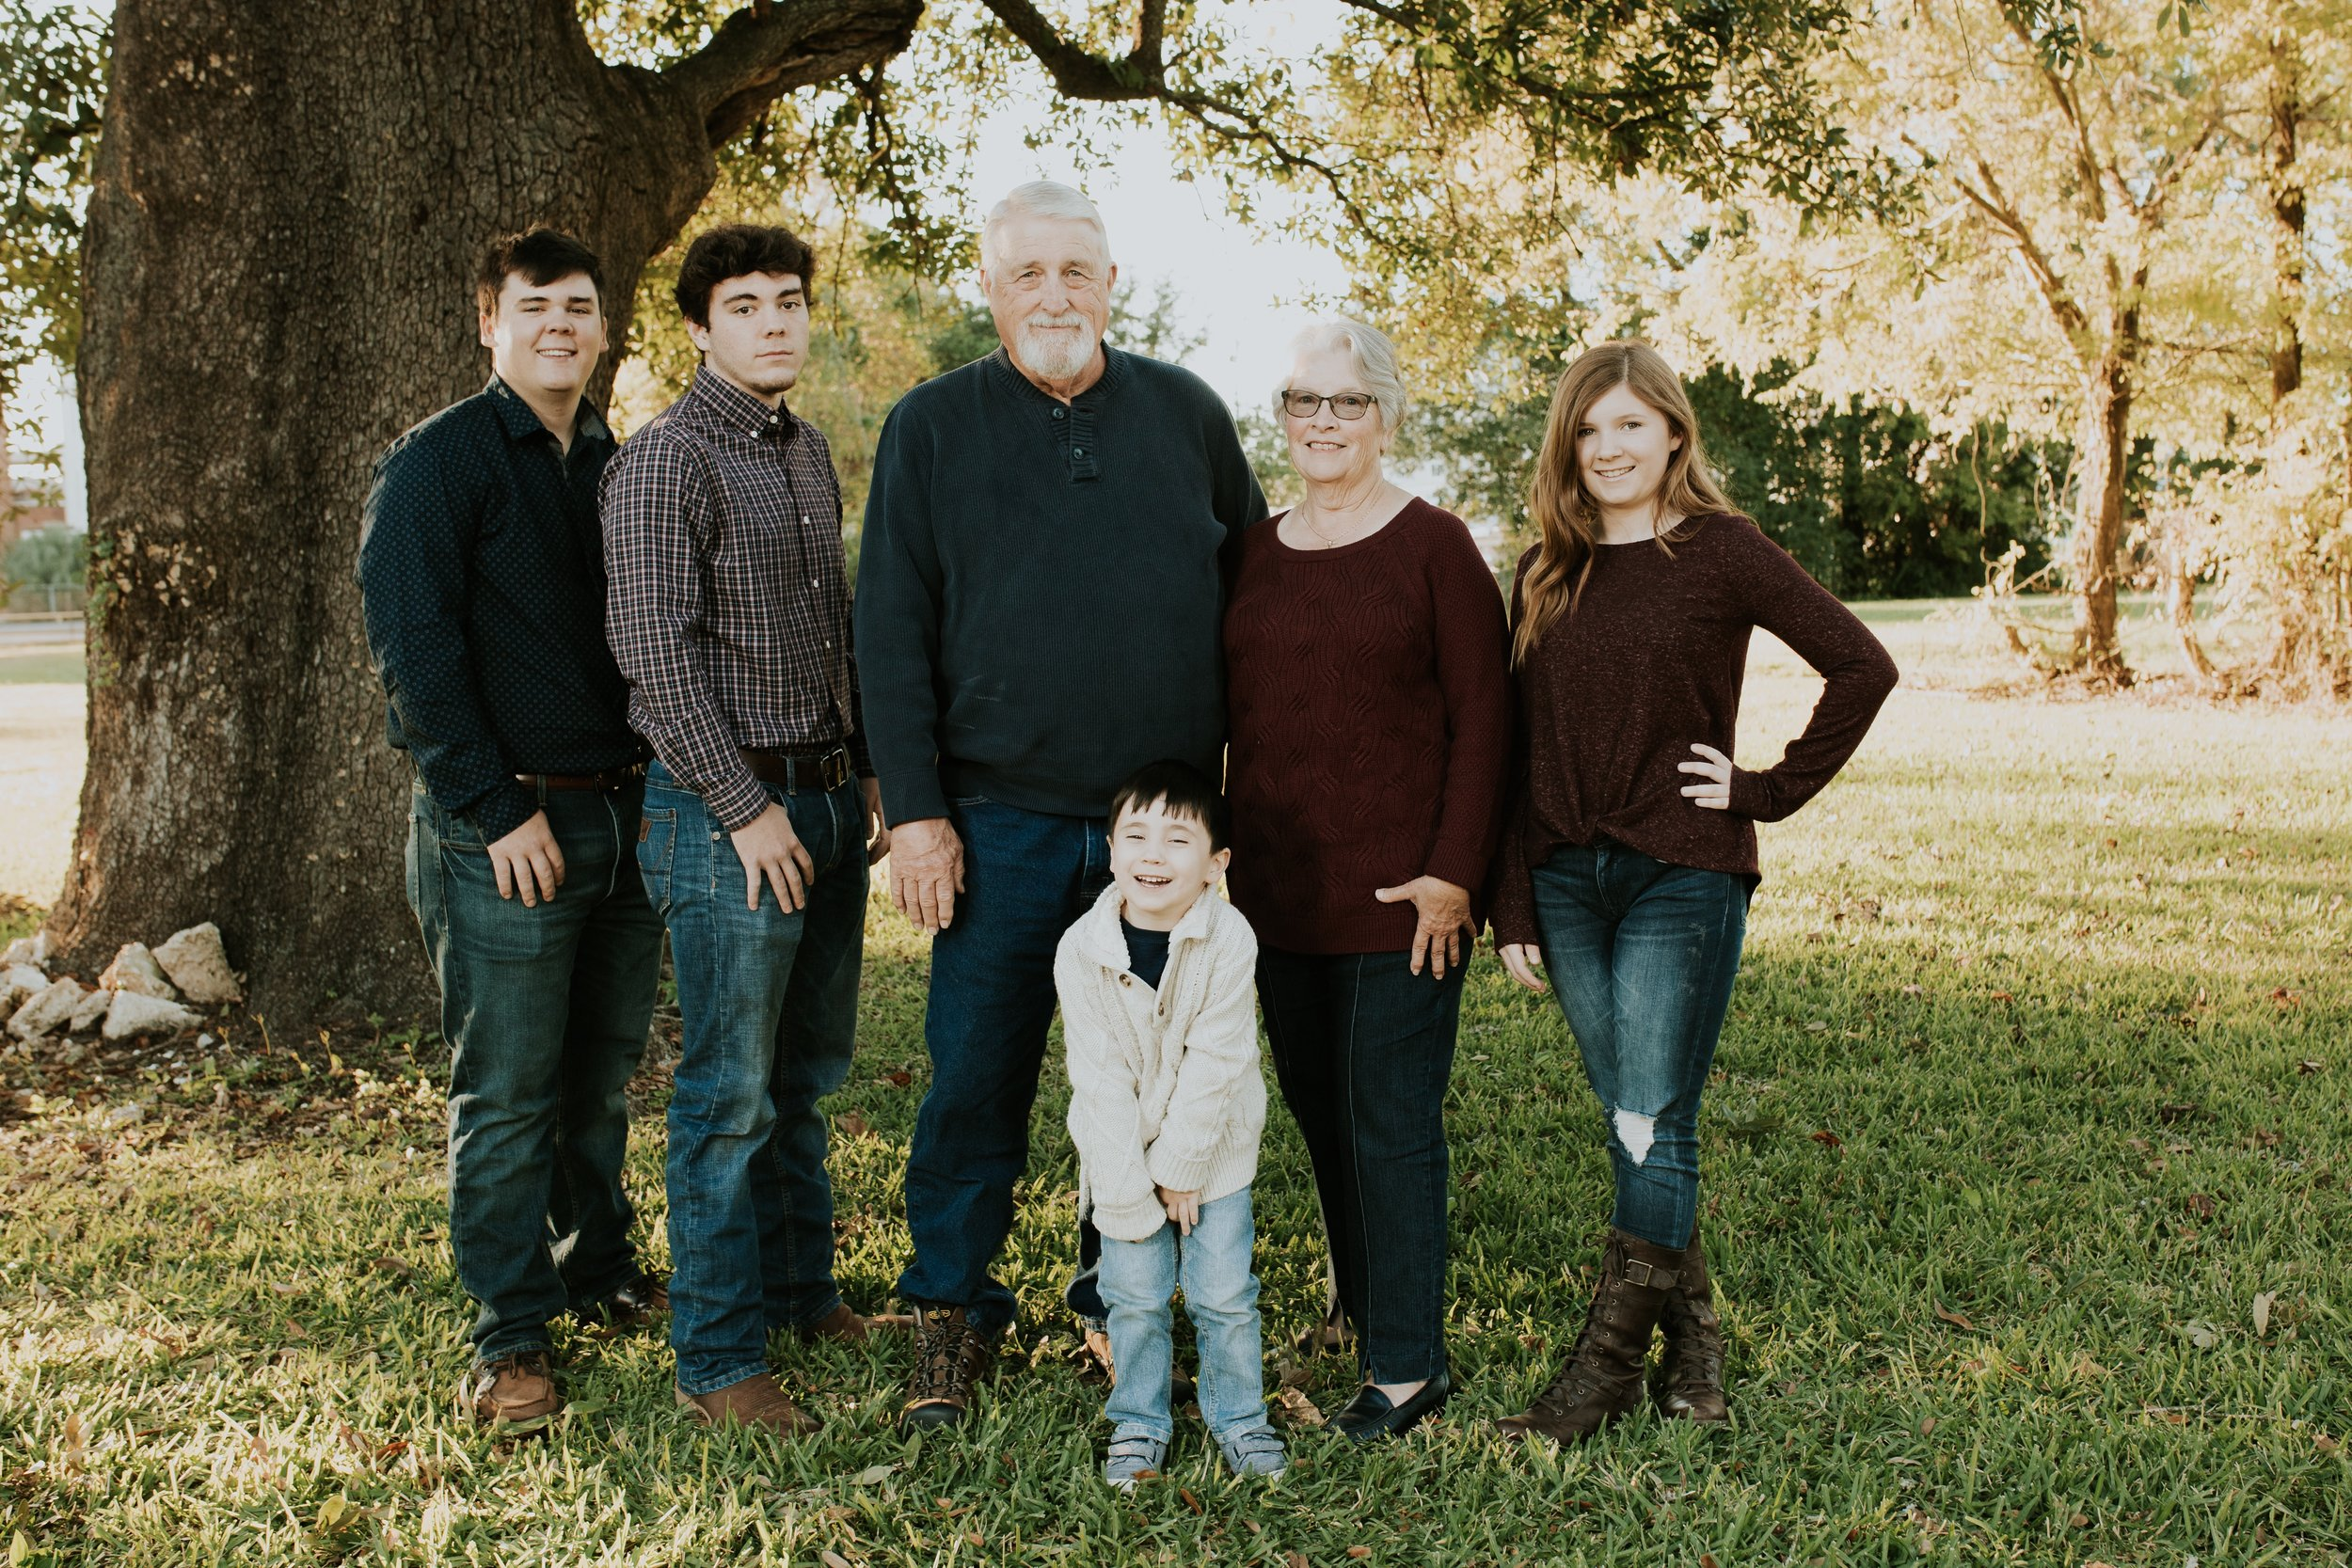 family-picture-photography-lake-charles-202.JPG